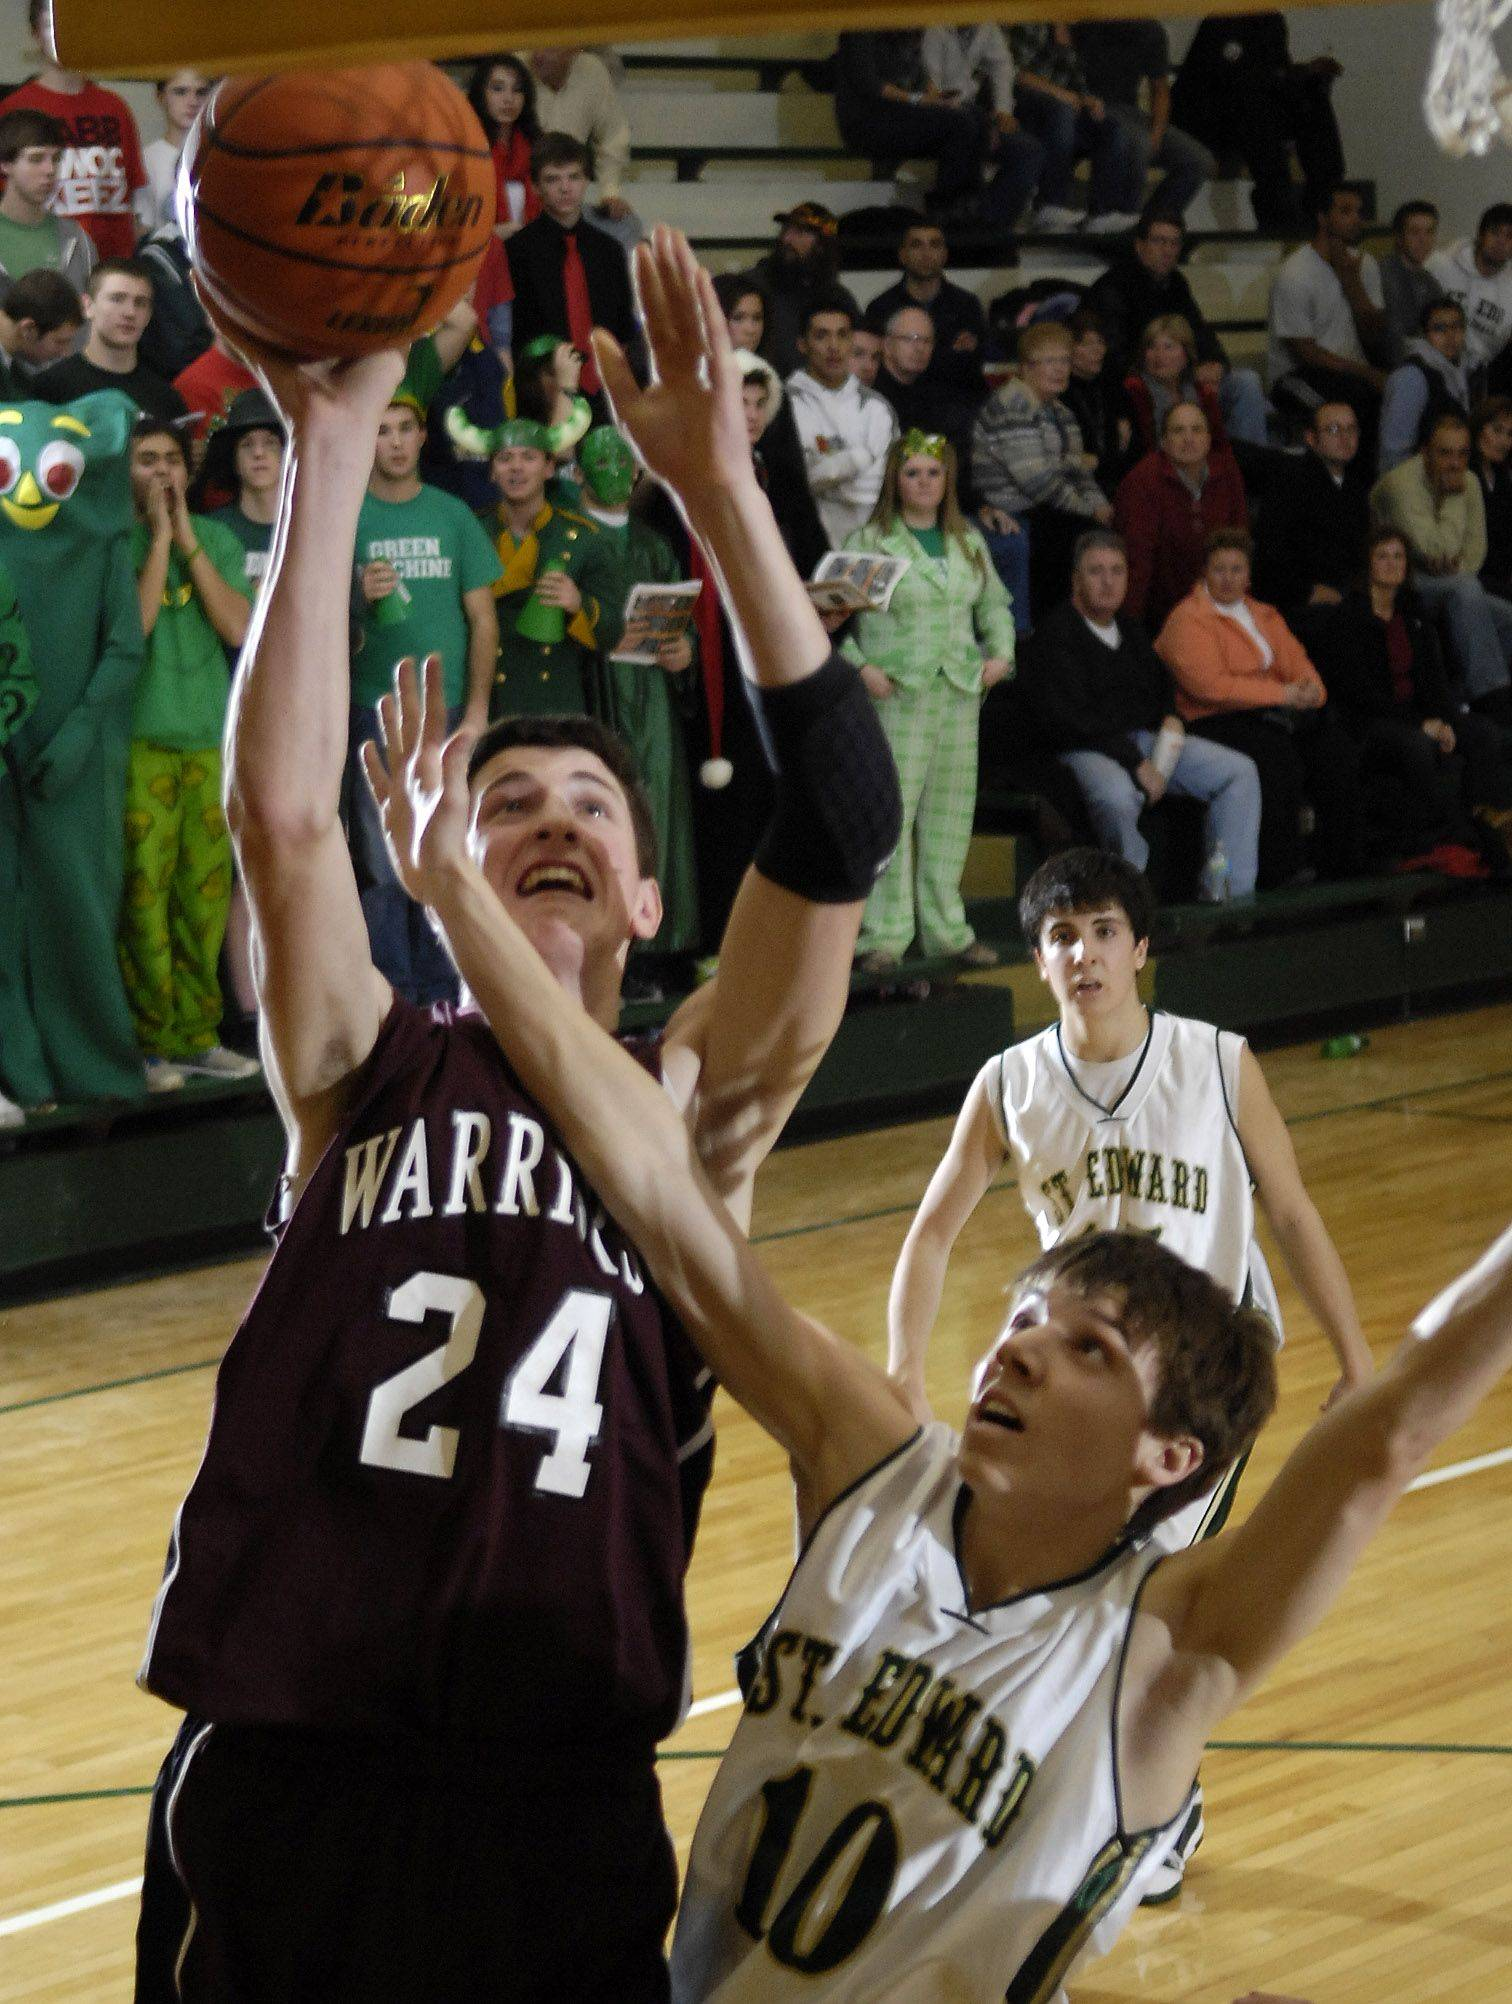 Wheaton Academy's Luke Thorson puts up a shot over St. Edward's Zach Brewster .